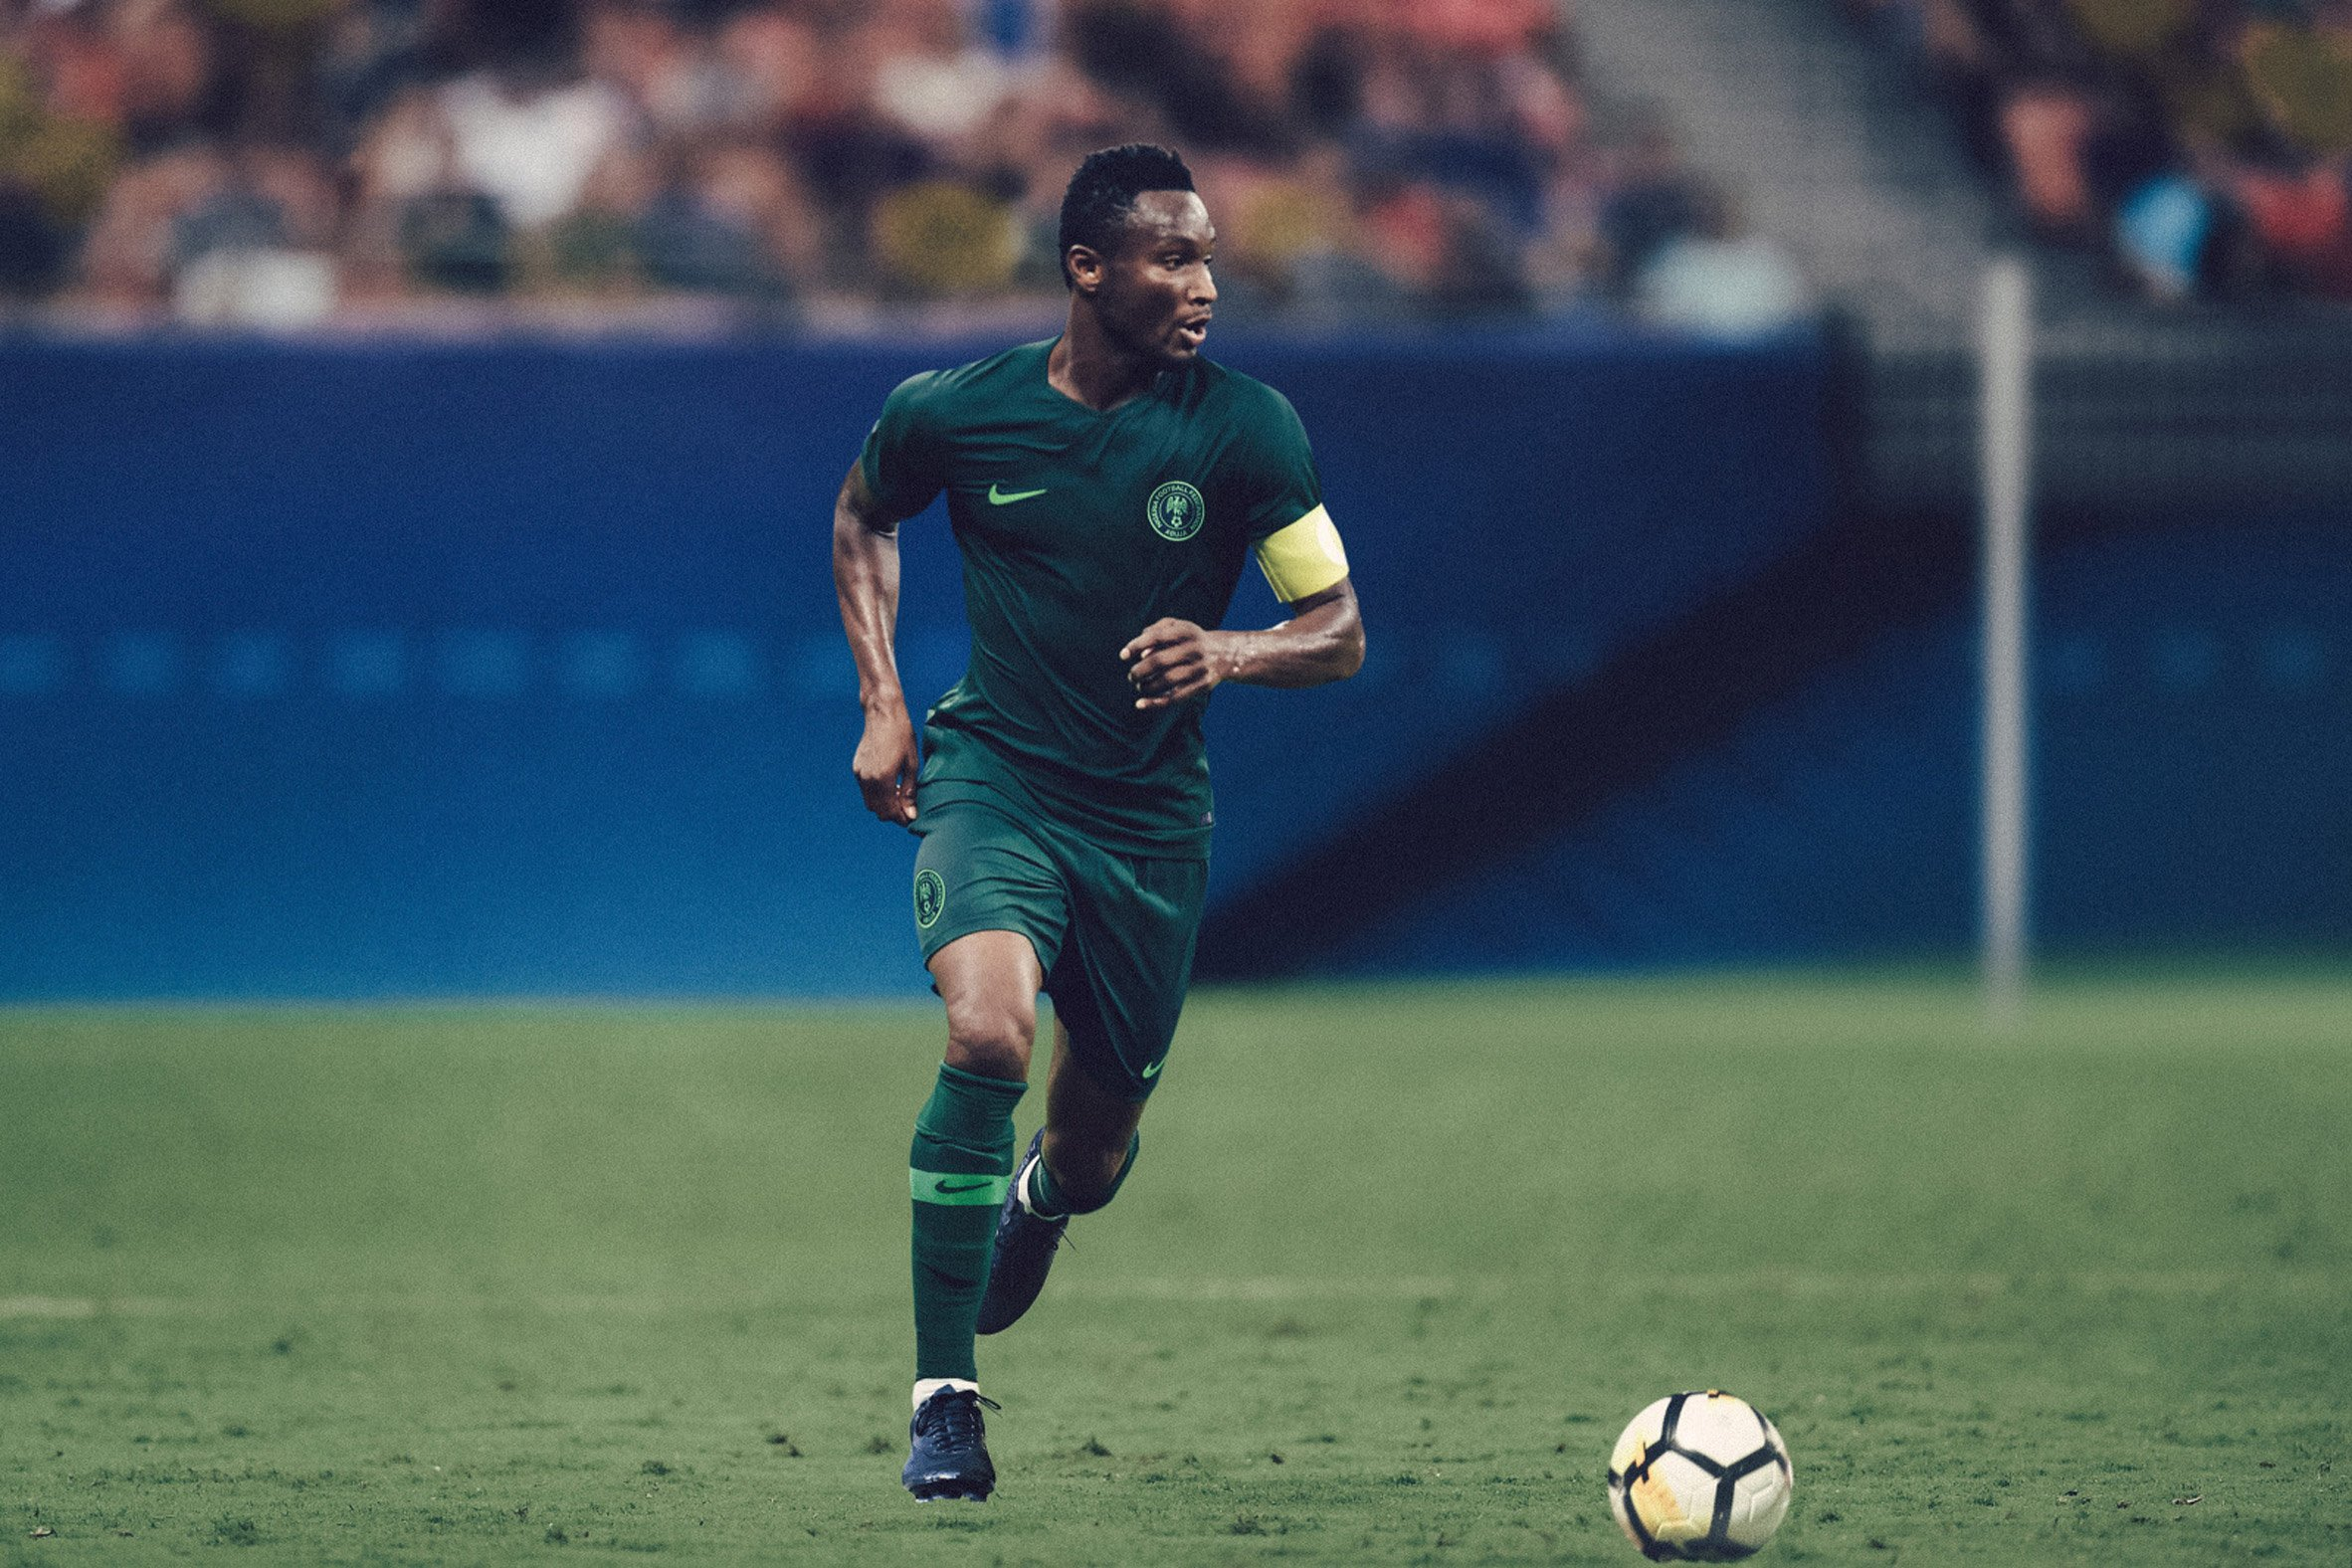 Great England Kit World Cup 2018 - england-nigeria-world-cup-2018-kits-nike-football-design_dezeen_2364_col_0  Gallery_141938 .jpg